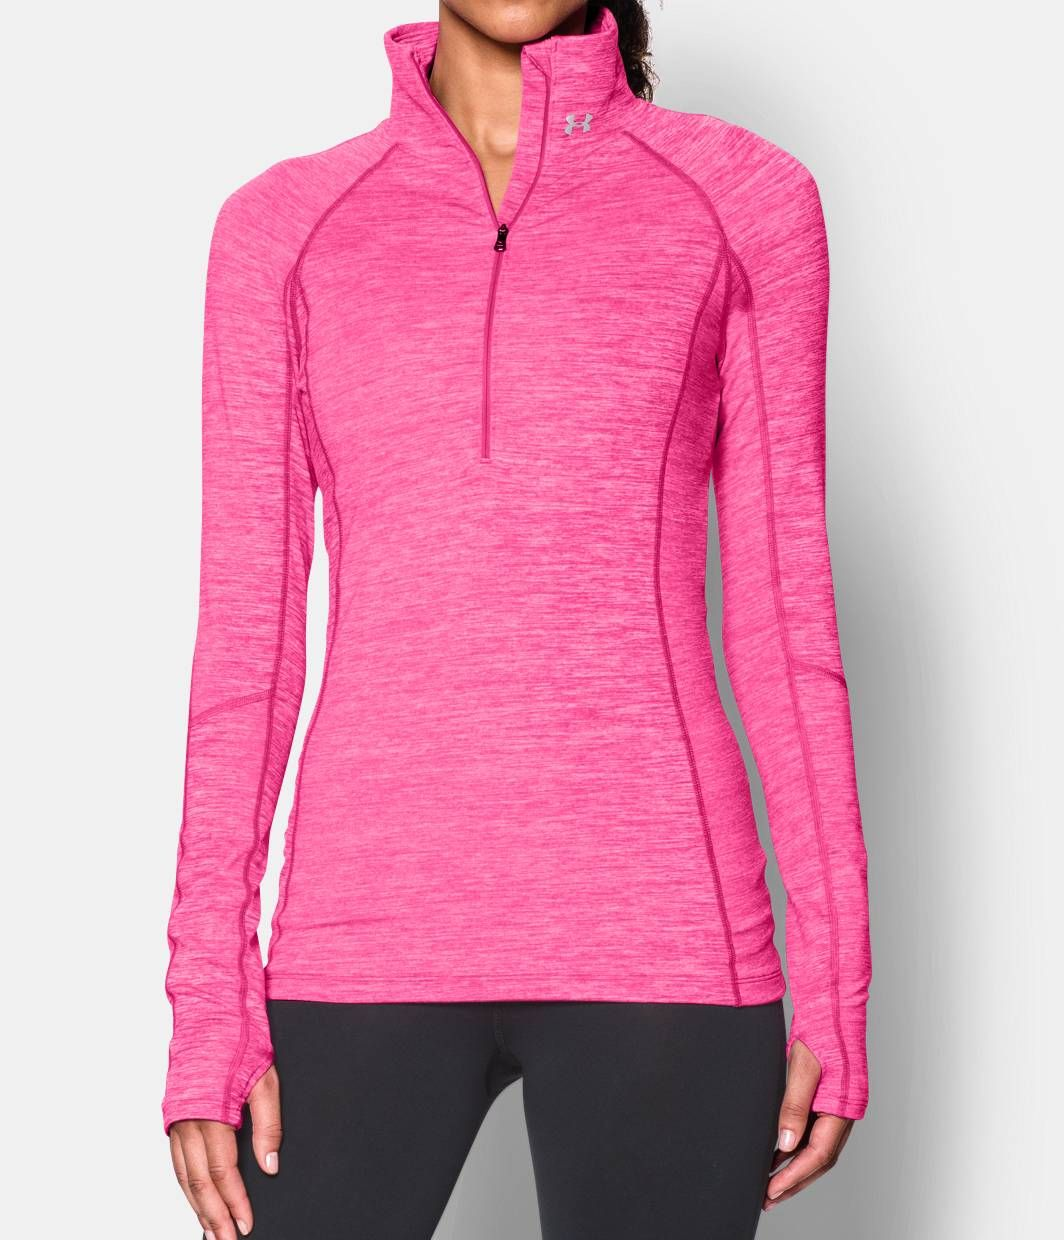 cf859579f7 Shop Under Armour for Women's ColdGear® Cozy ½ Zip in our Womens ...